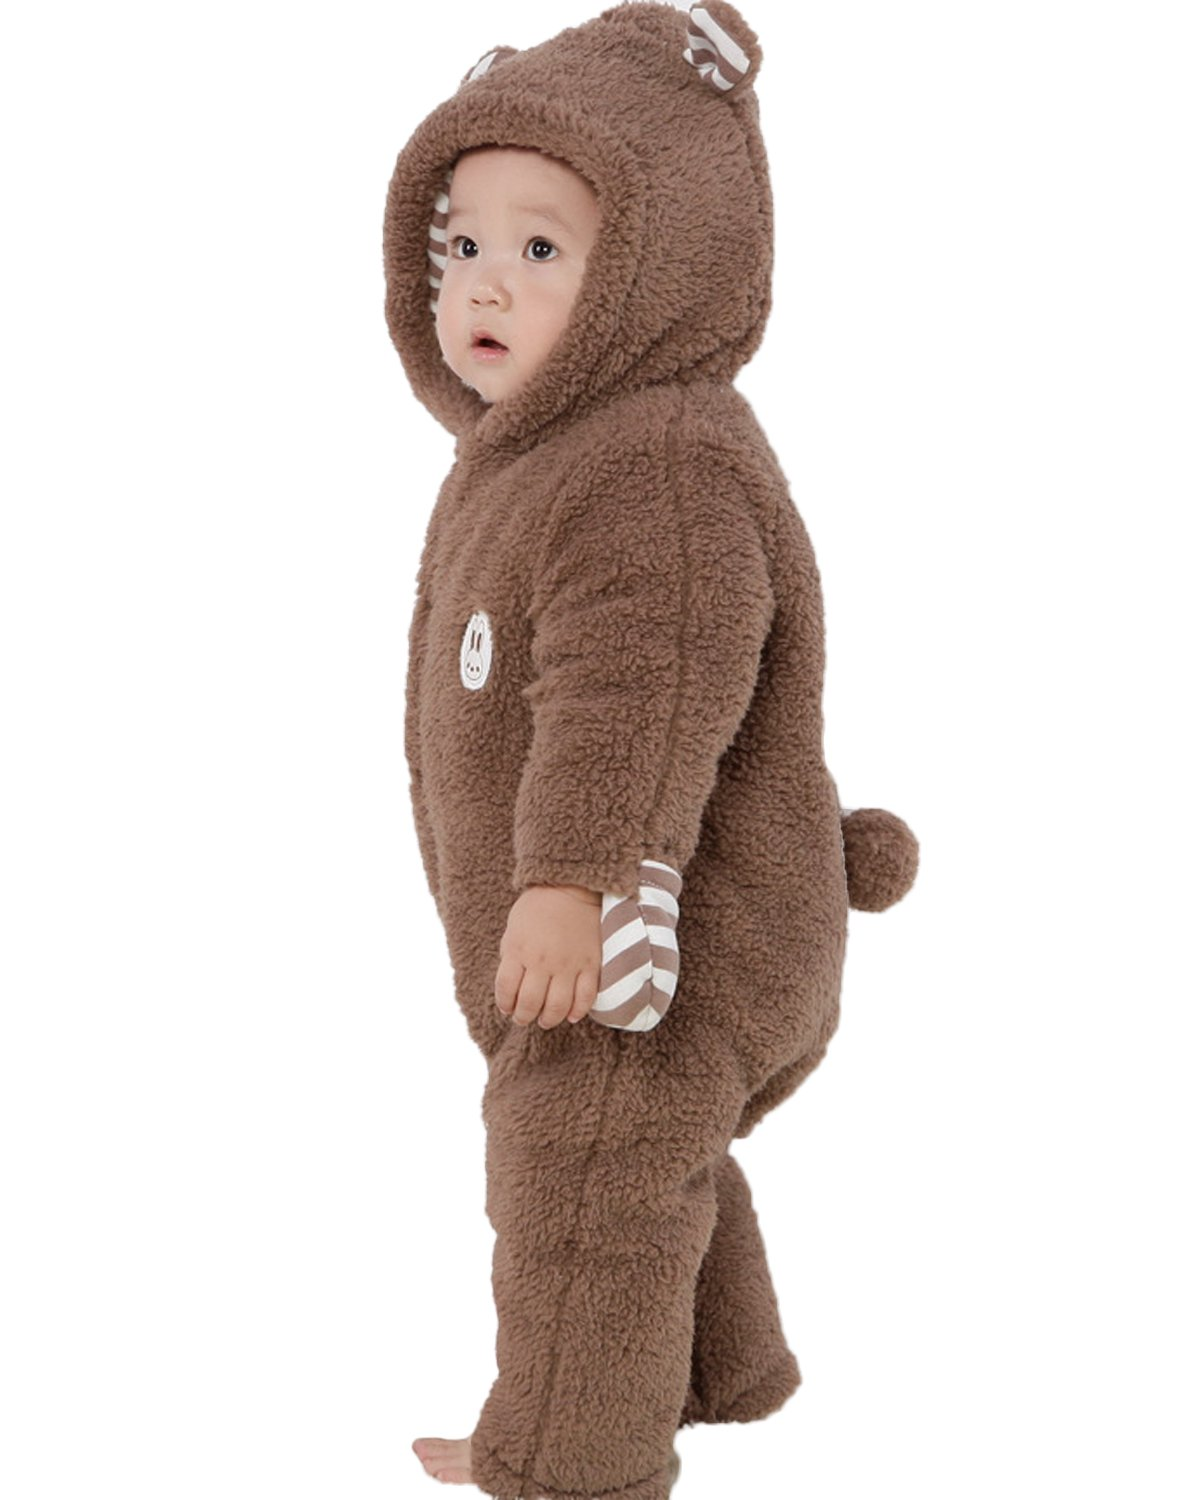 Kidsform Infant Winter Snowsuit Baby Bear Hoodie Romper Outfit Fleece Bunting Pram Suit Outerwear Coat Coveralls 0-24M Brown 3-6M by Kidsform (Image #2)